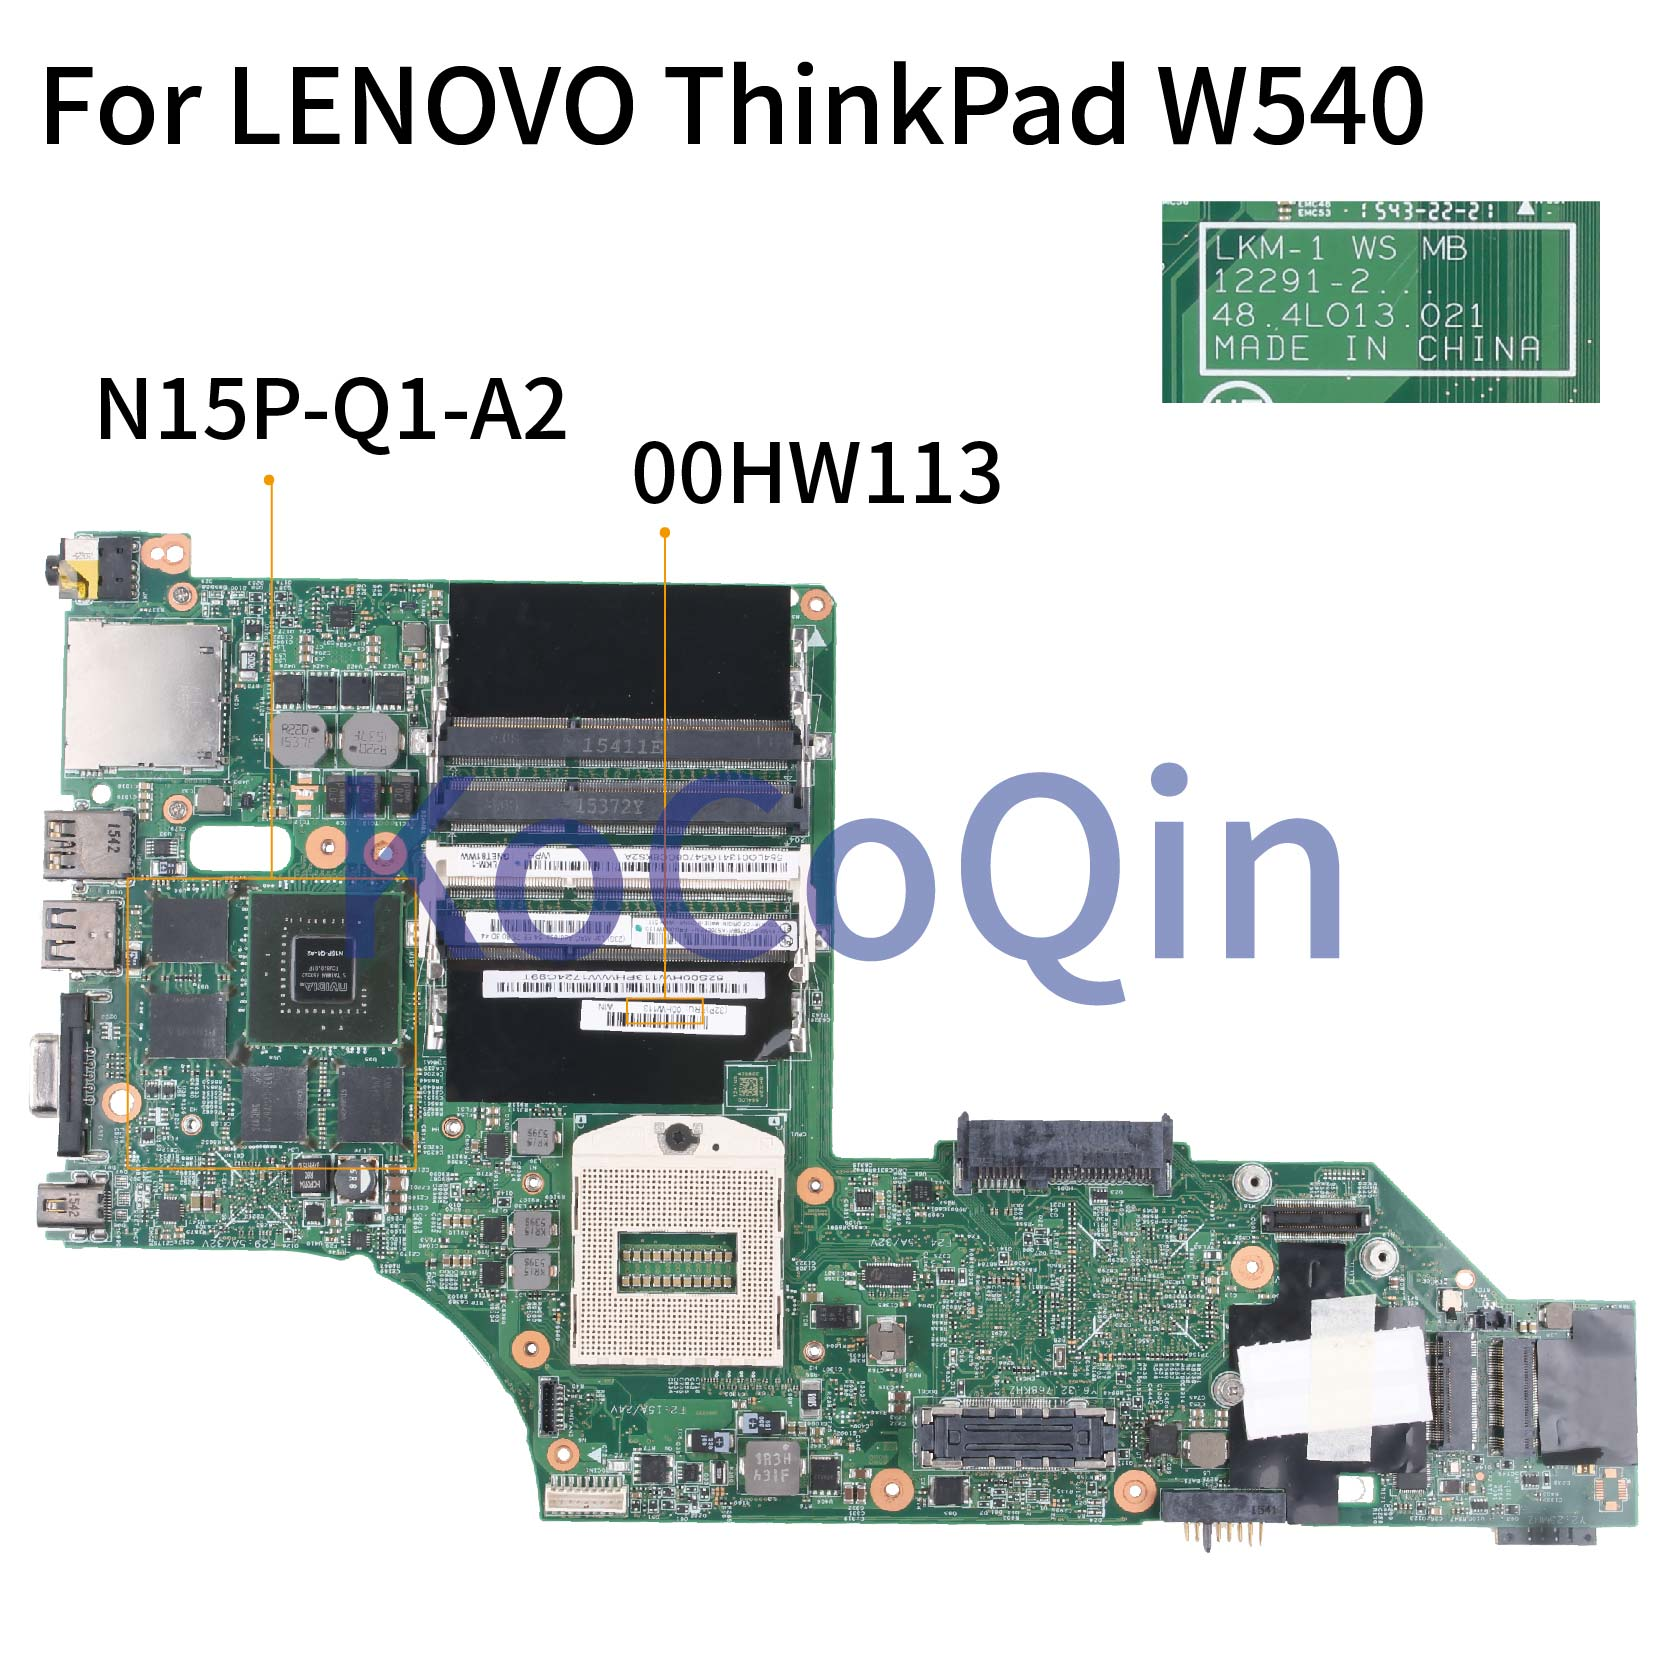 KoCoQin Laptop Motherboard For LENOVO ThinkPad W540 W541 Q1 Mainboard 00HW129 00HW113 LKM-1 12291-2 48.4LO13.021  N15P-Q1-A2 2G